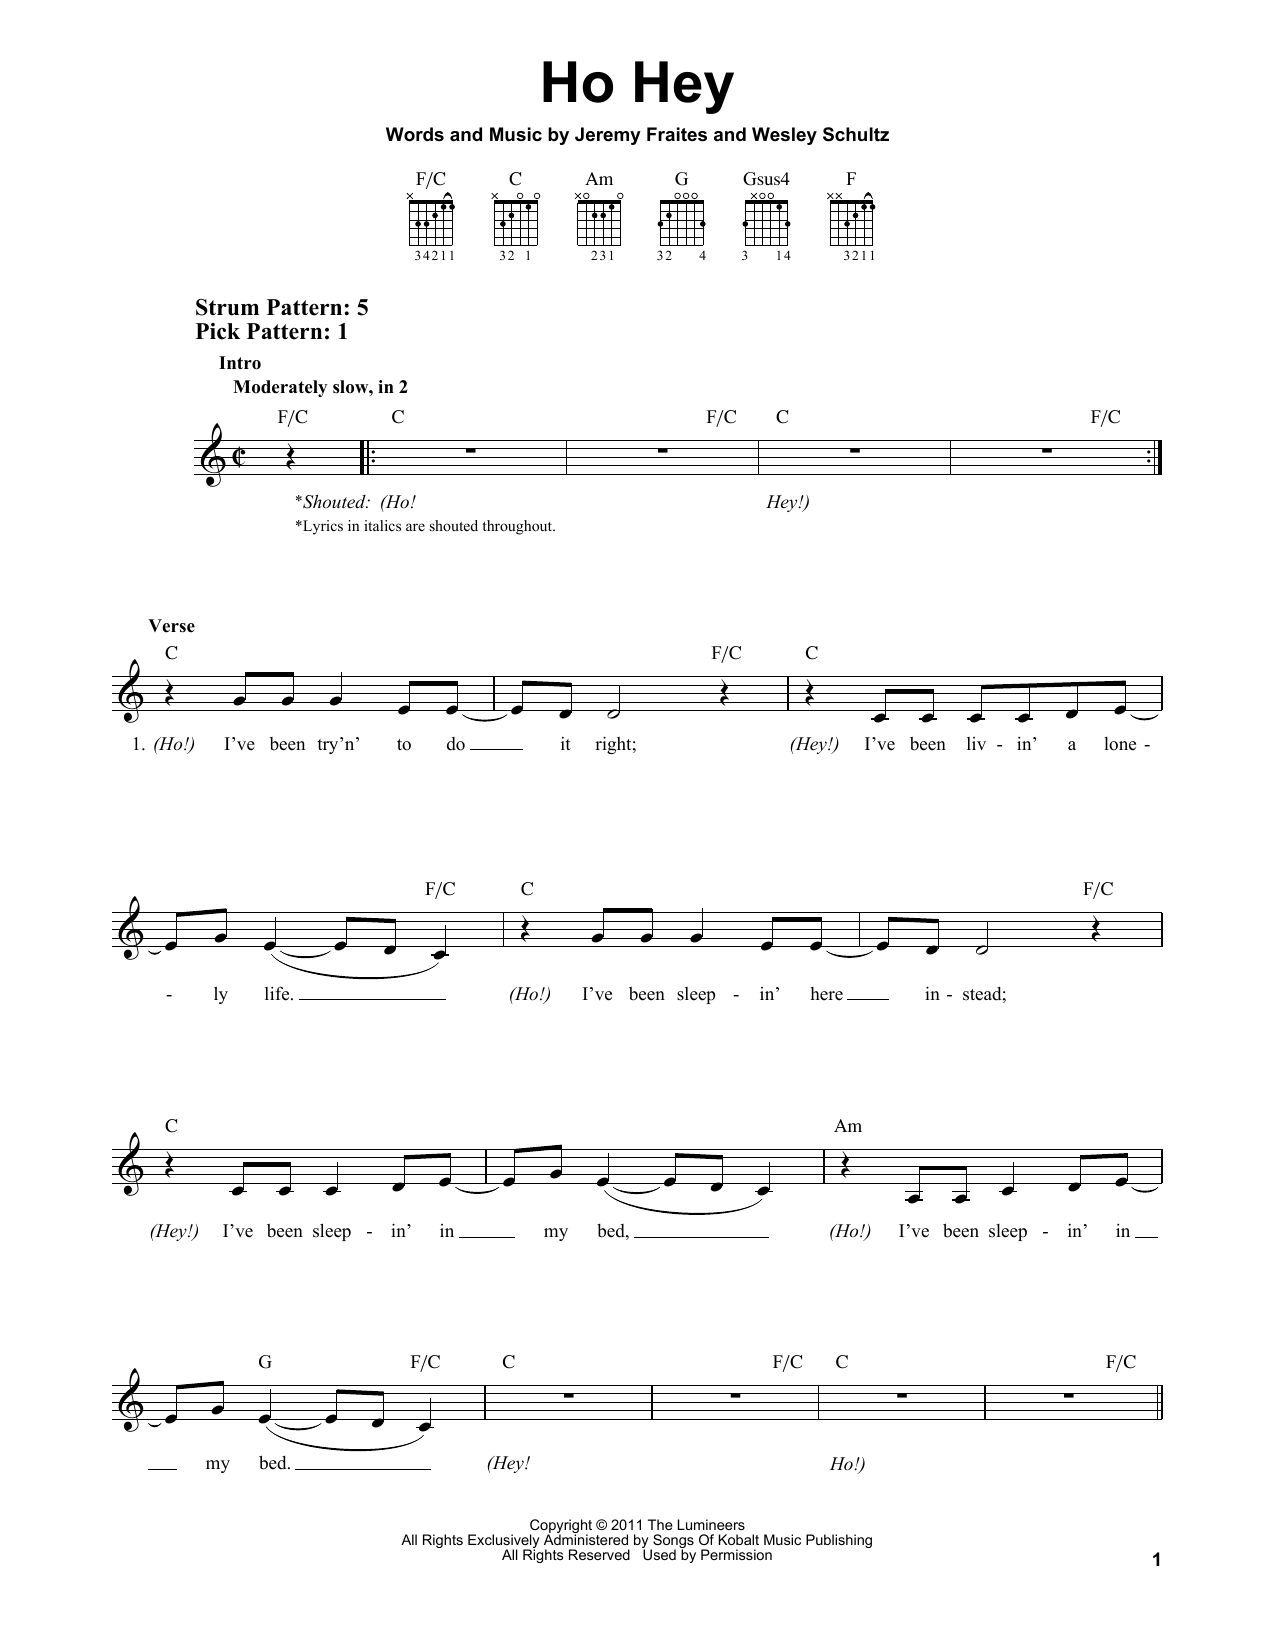 Ho Hey Chords The Lumineers Ho Hey Sheet Music Notes Chords Download Printable Easy Guitar Sku 156335